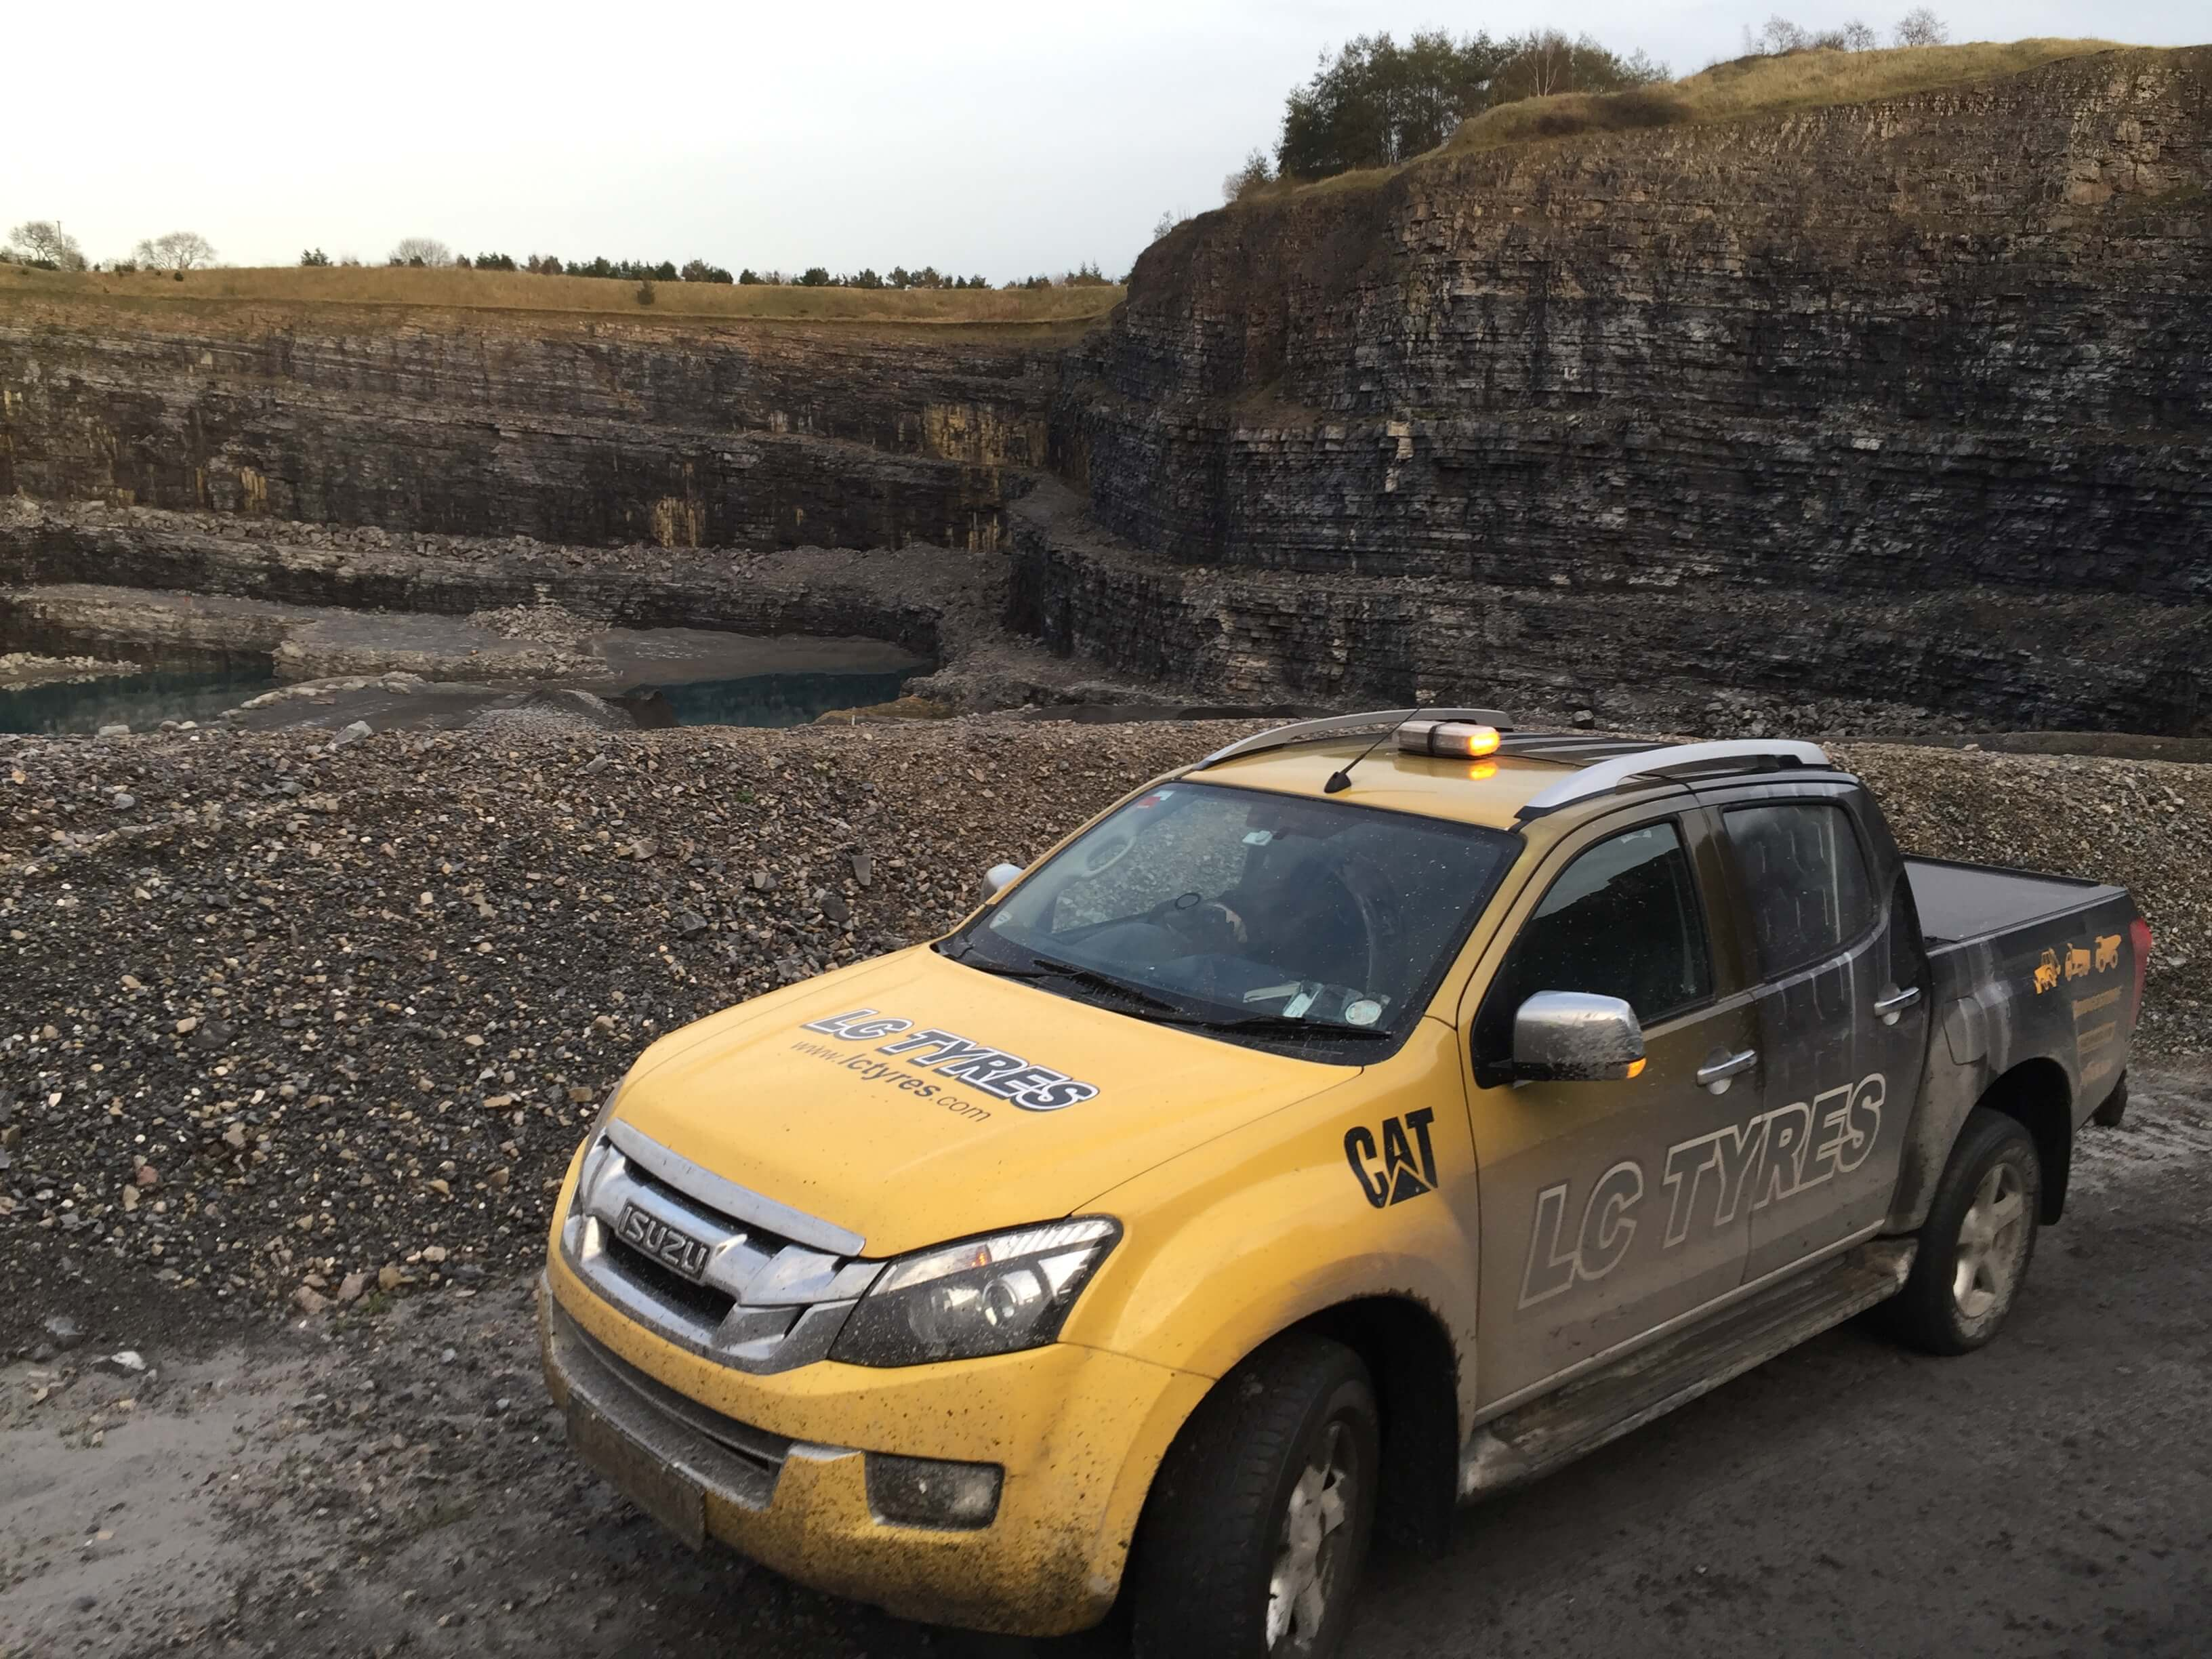 LC Tyres in a quarry